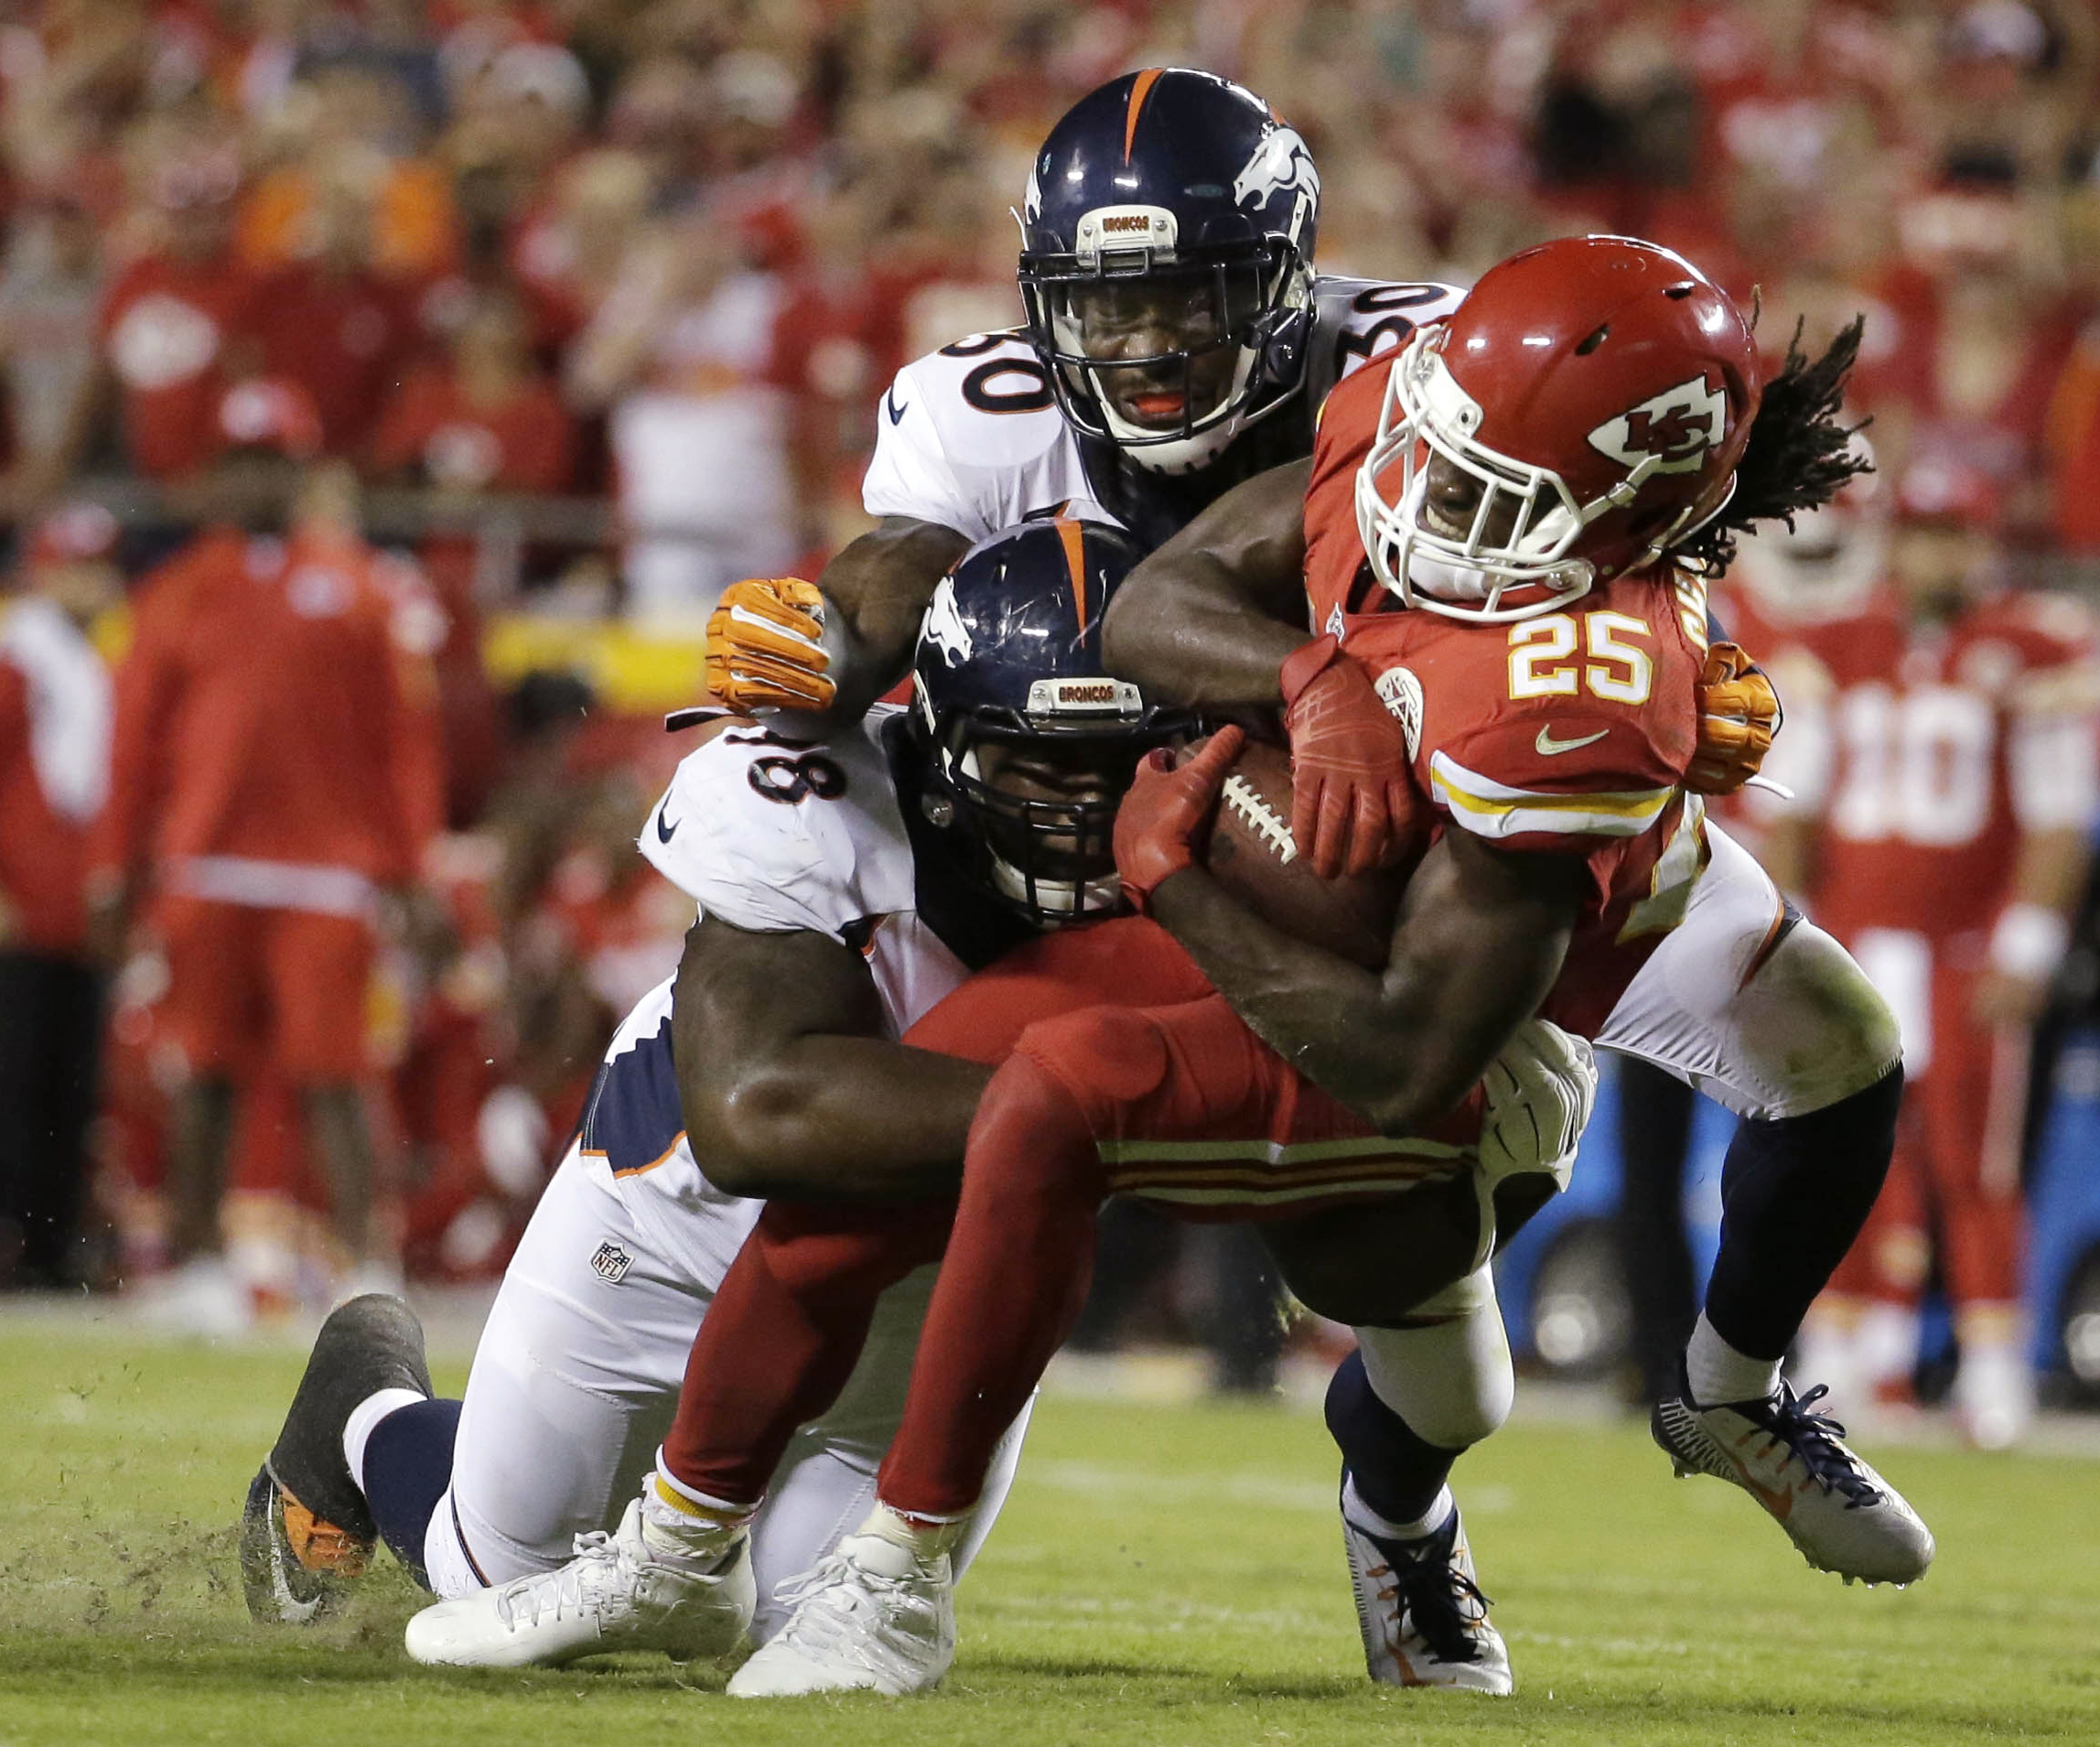 Kansas City Chiefs running back Jamaal Charles (25) is tackled by Denver Broncos nose tackle Darius Kilgo (98) and safety David Bruton Jr. (30) during the second half of an NFL football game in Kansas City, Mo., Thursday, Sept. 17, 2015. (AP Photo/Charlie